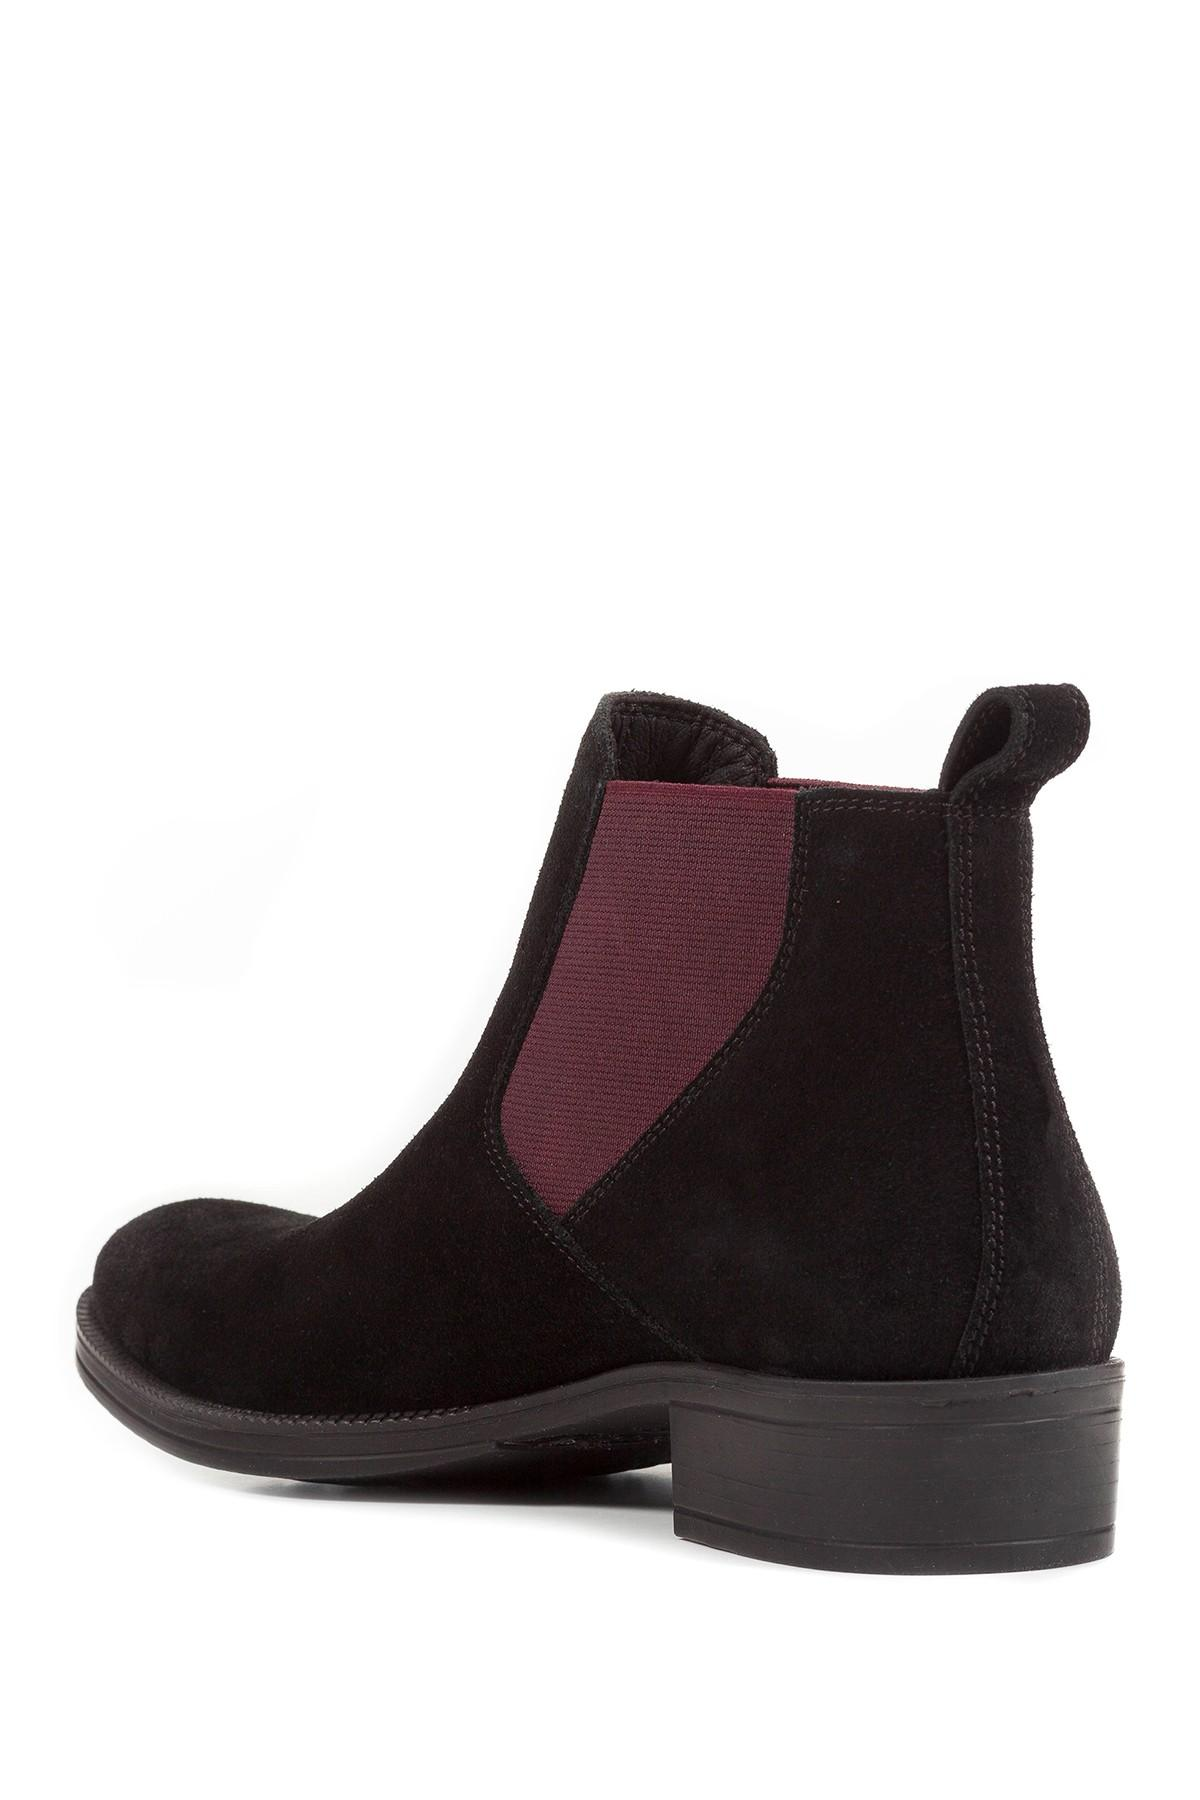 Lyst - Geox Laceyin Chelsea Boot in Black 30f8190a1c1